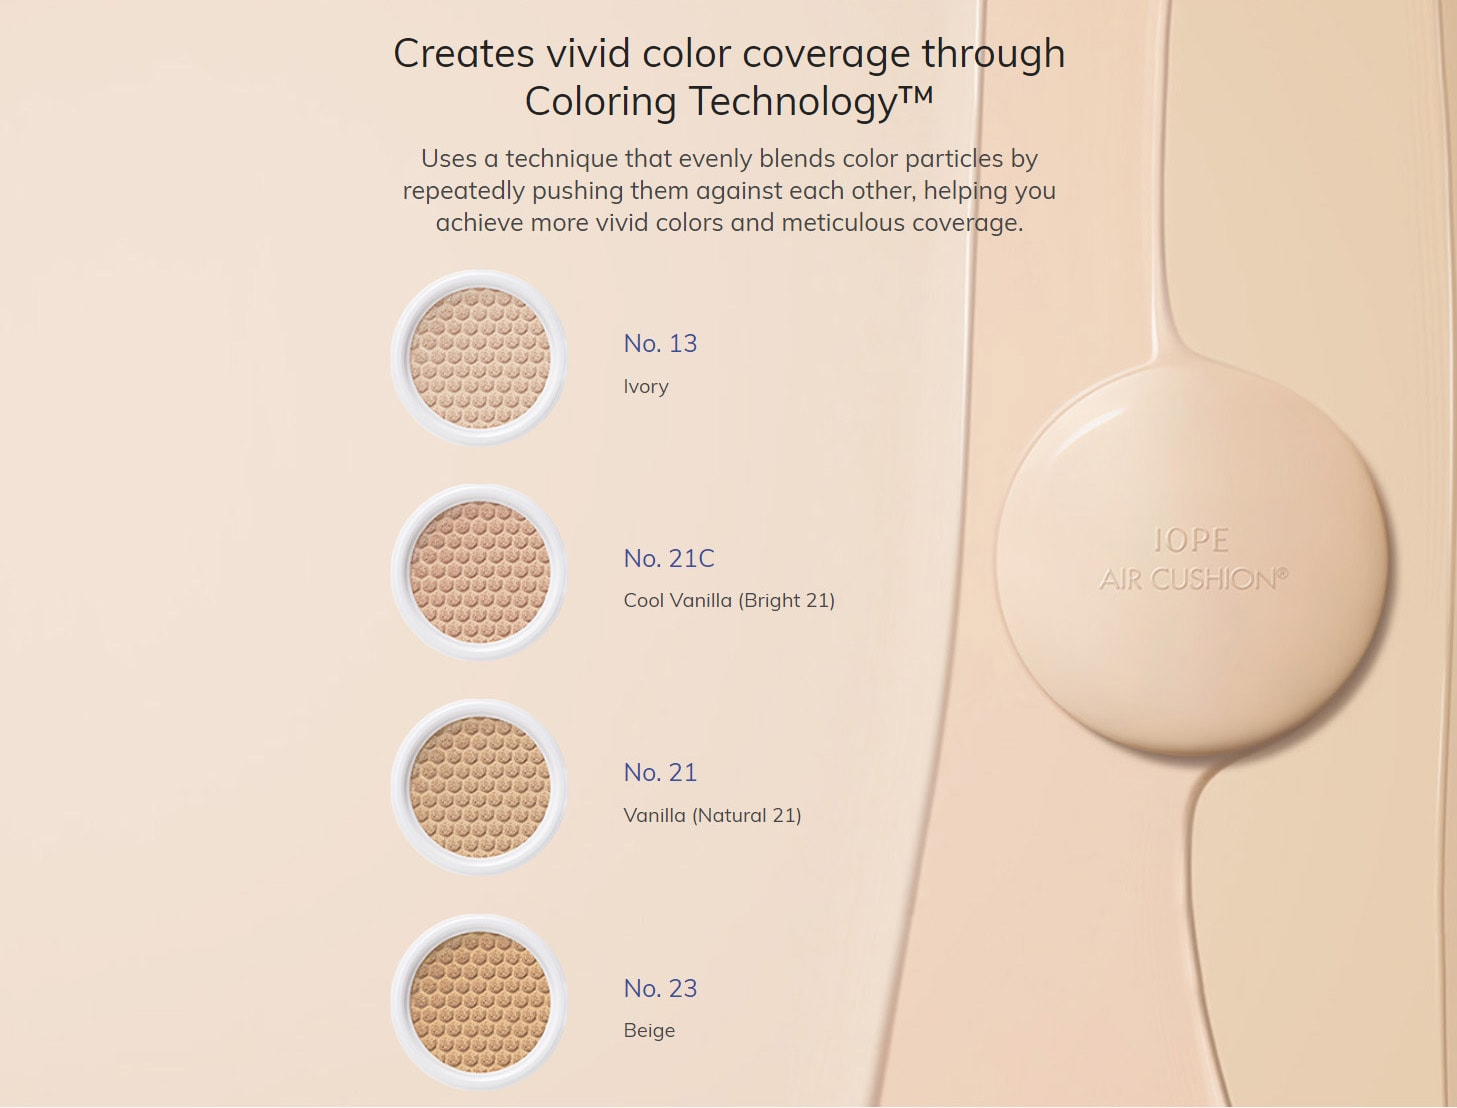 IOPE Air Cushion Cover - Colors